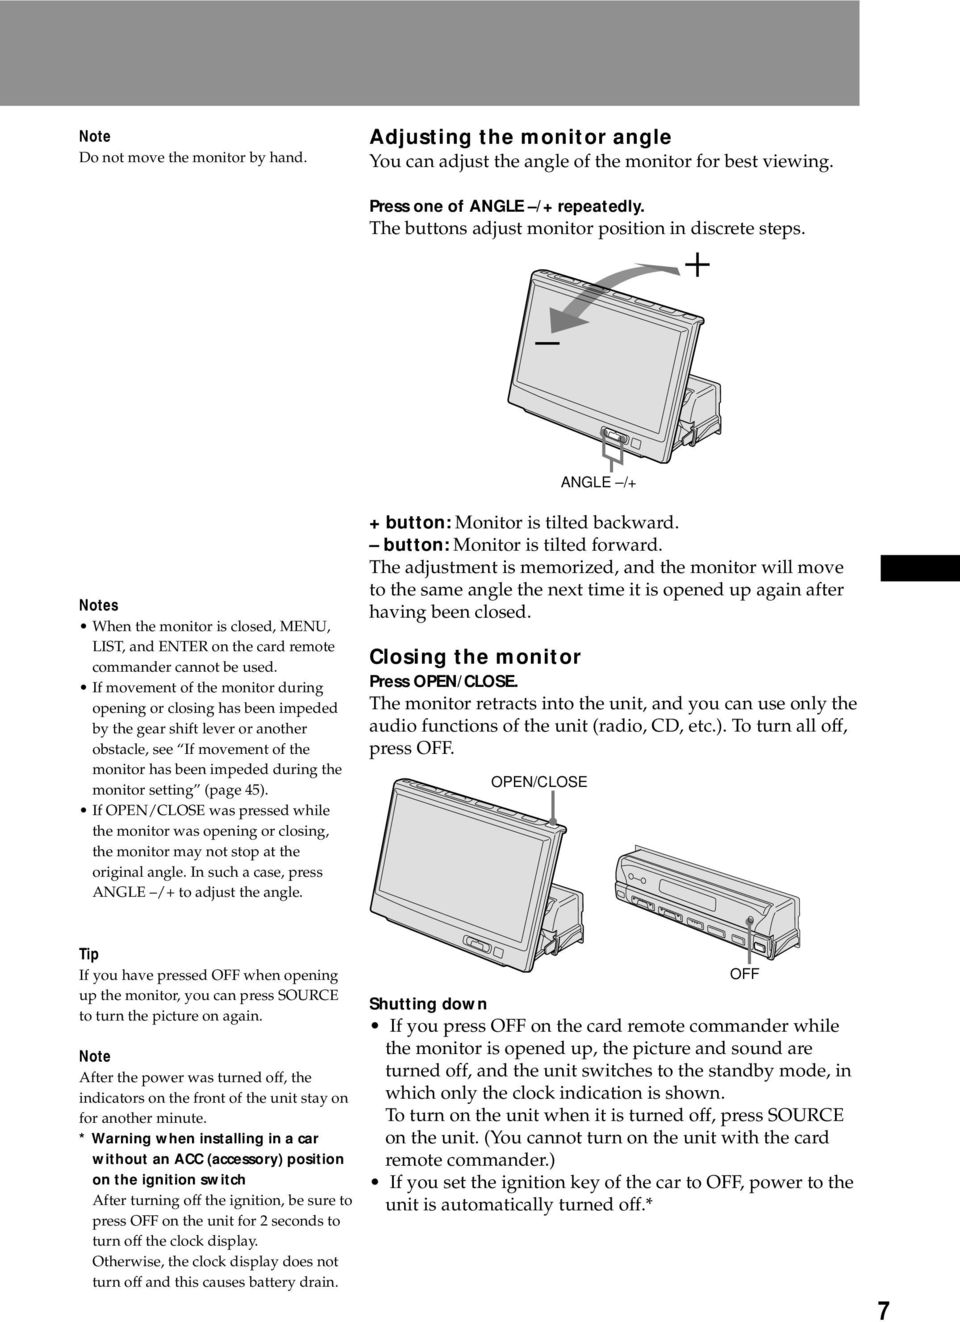 If movement of the monitor during opening or closing has been impeded by the gear shift lever or another obstacle, see If movement of the monitor has been impeded during the monitor setting (page 45).